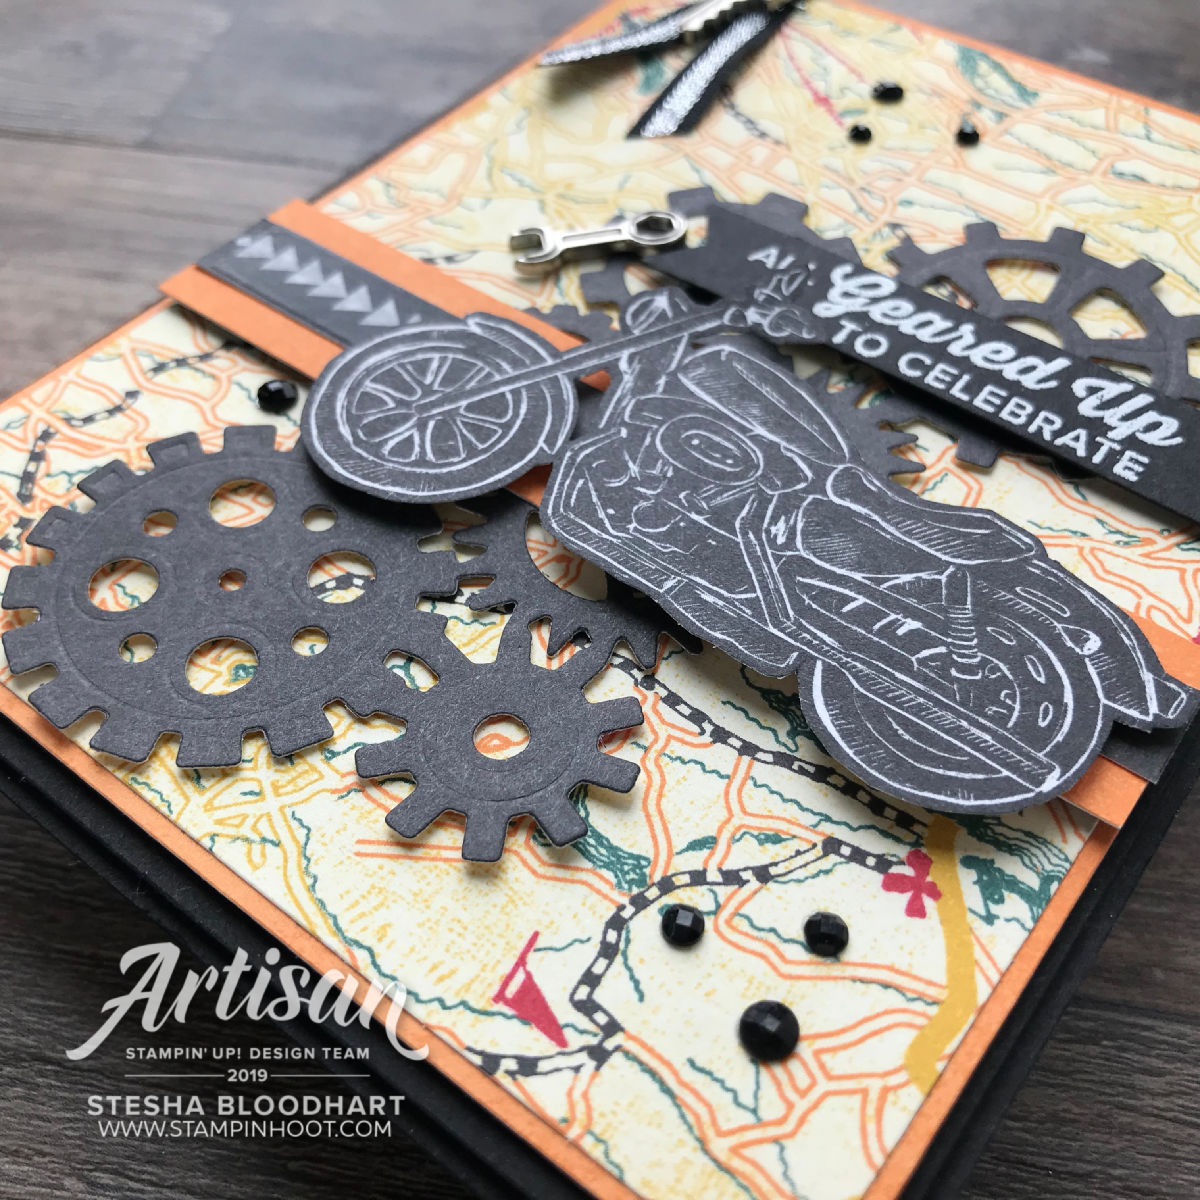 Garage Gears 2019 Artisan Design Stesha Bloodhart Best Dad Handmade Card